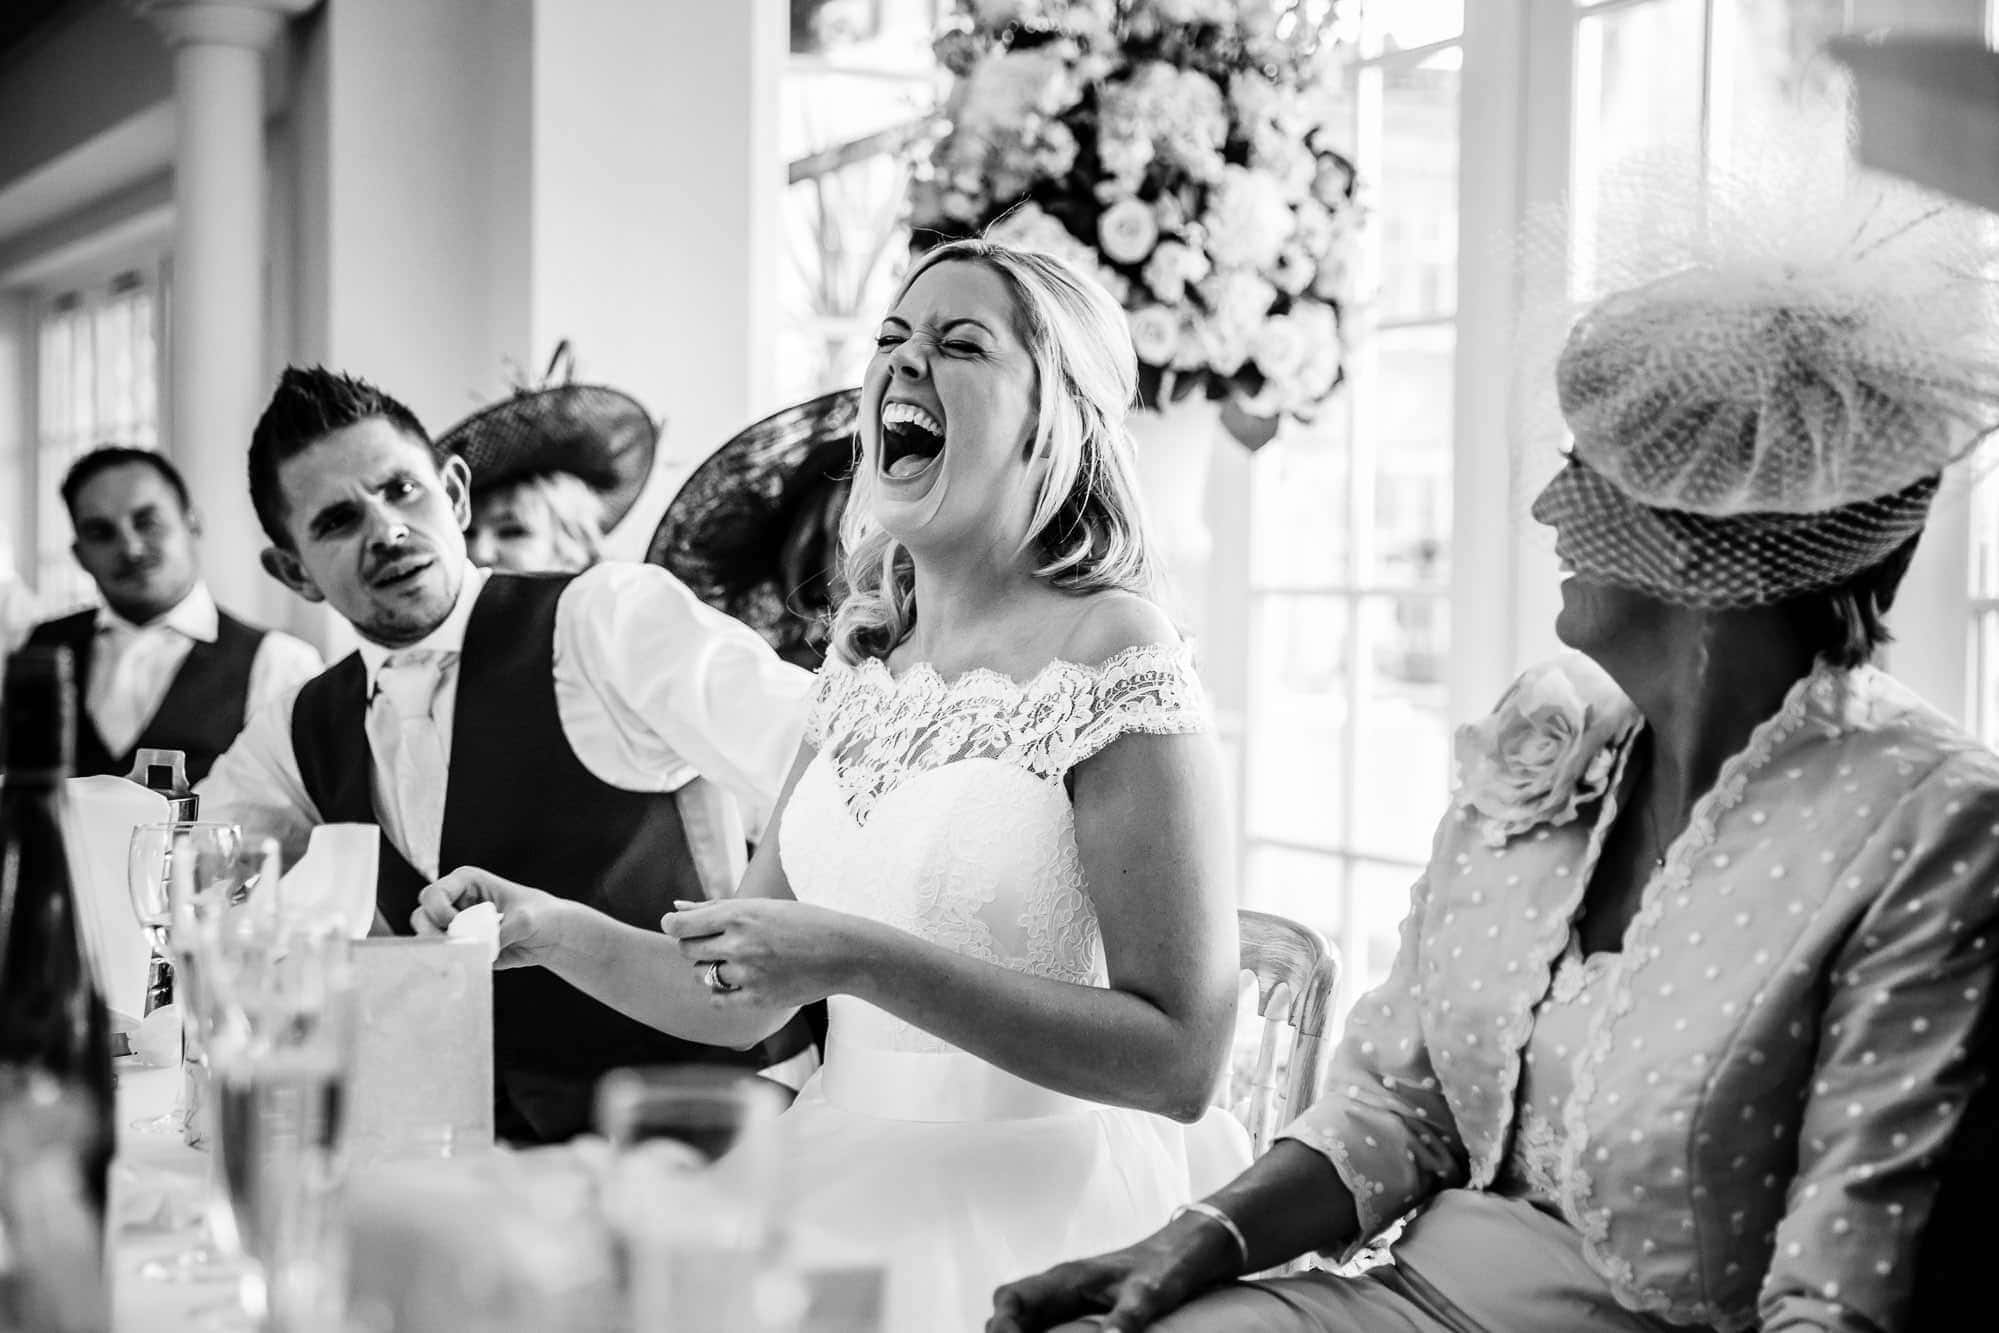 Surrey Wedding Photographer - Speeches at Froyle Park Wedding - Black and White